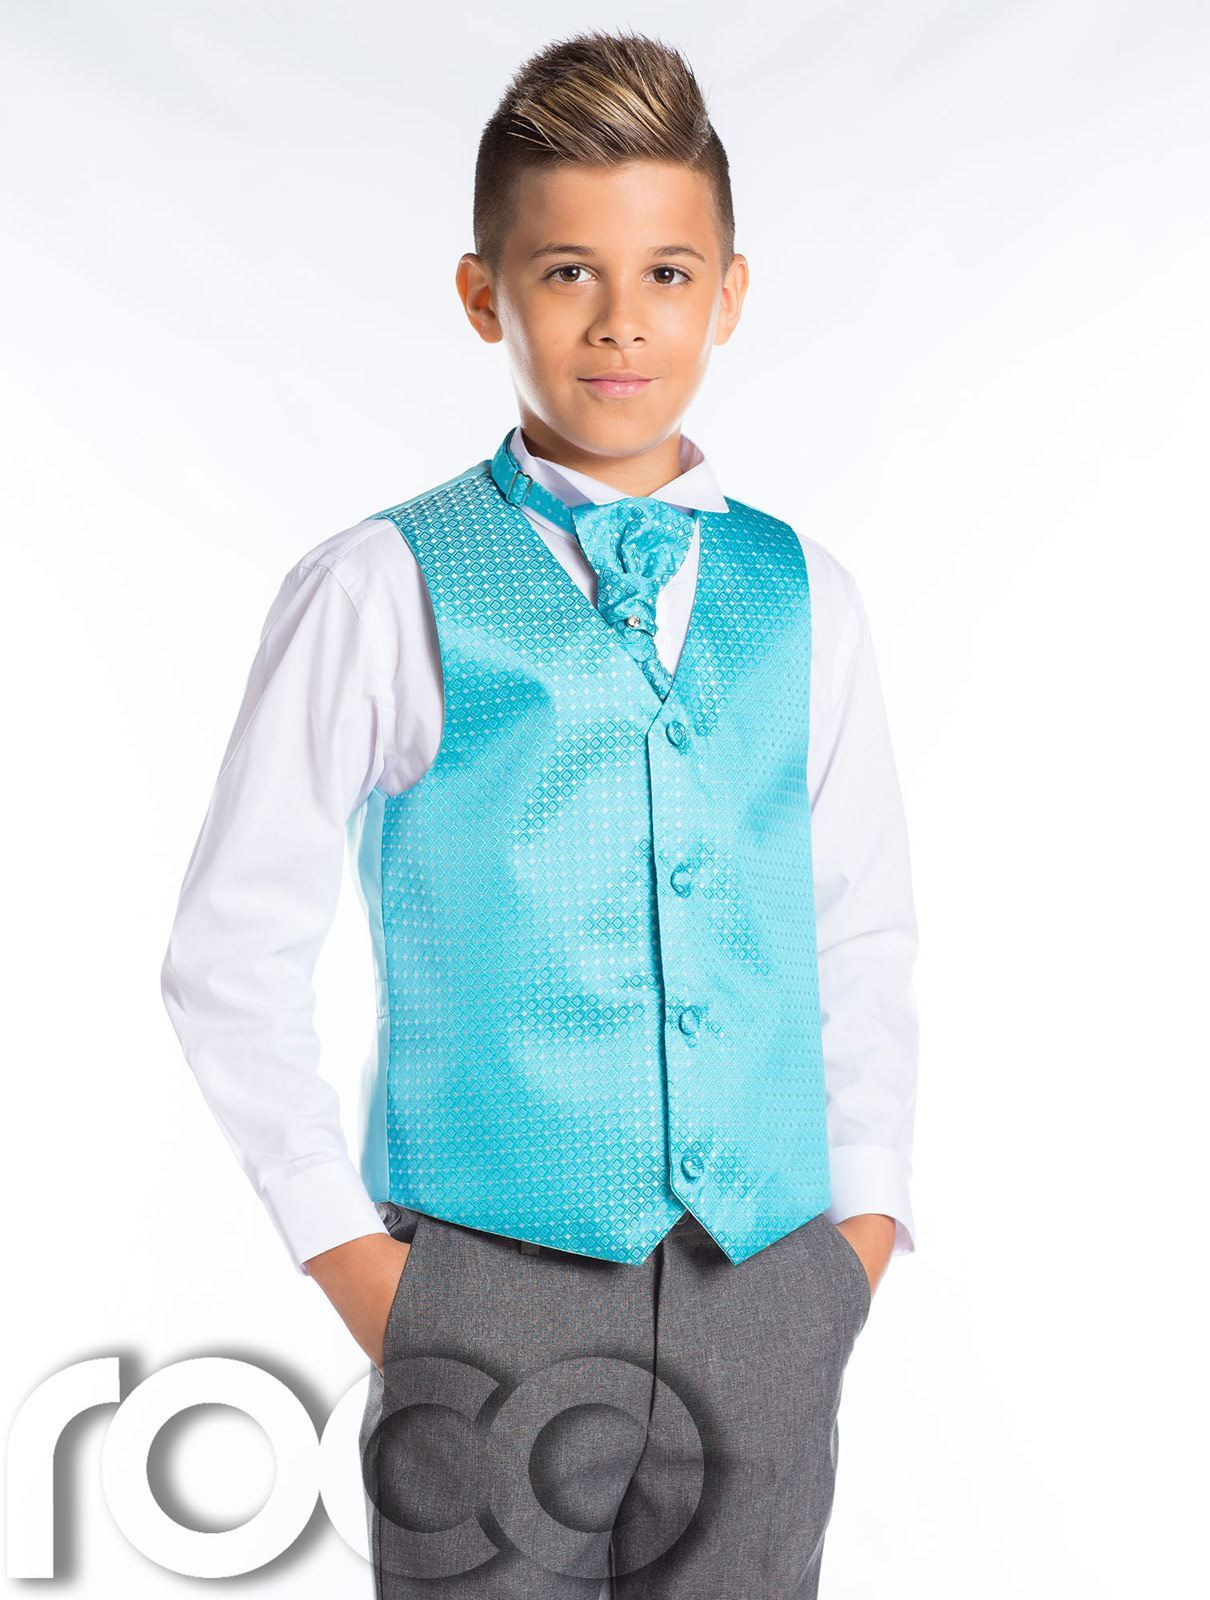 Boys Wedding Suit, Slim Fit Suit, Boys Grey Suit, Boys Prom Suit ...